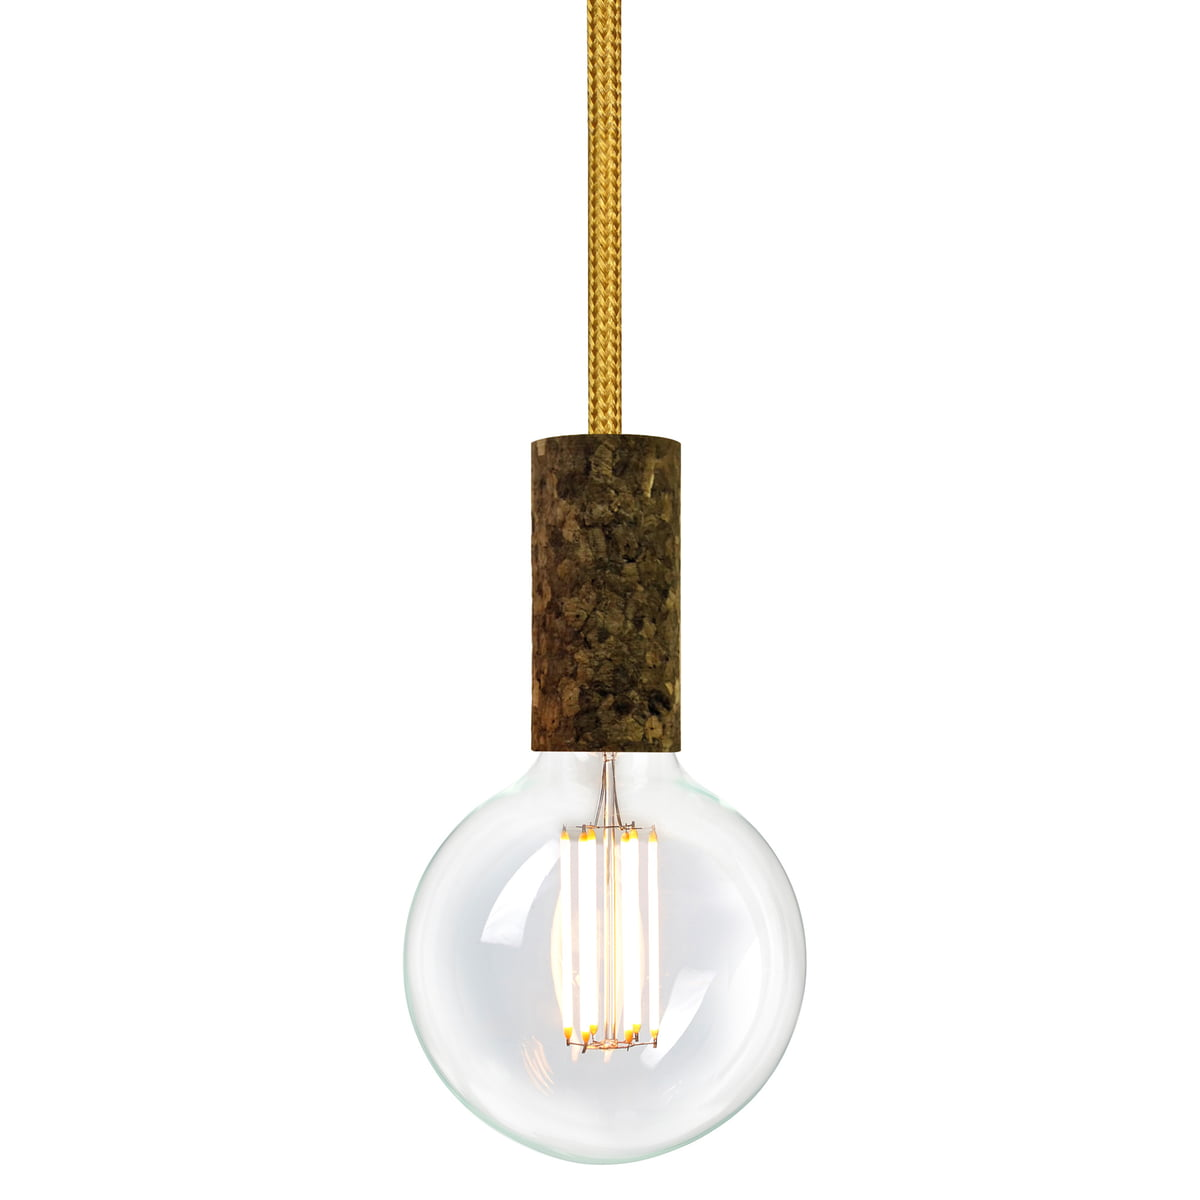 Cork Soil Gold Spire TT 150 By NUD Collection With Bulb